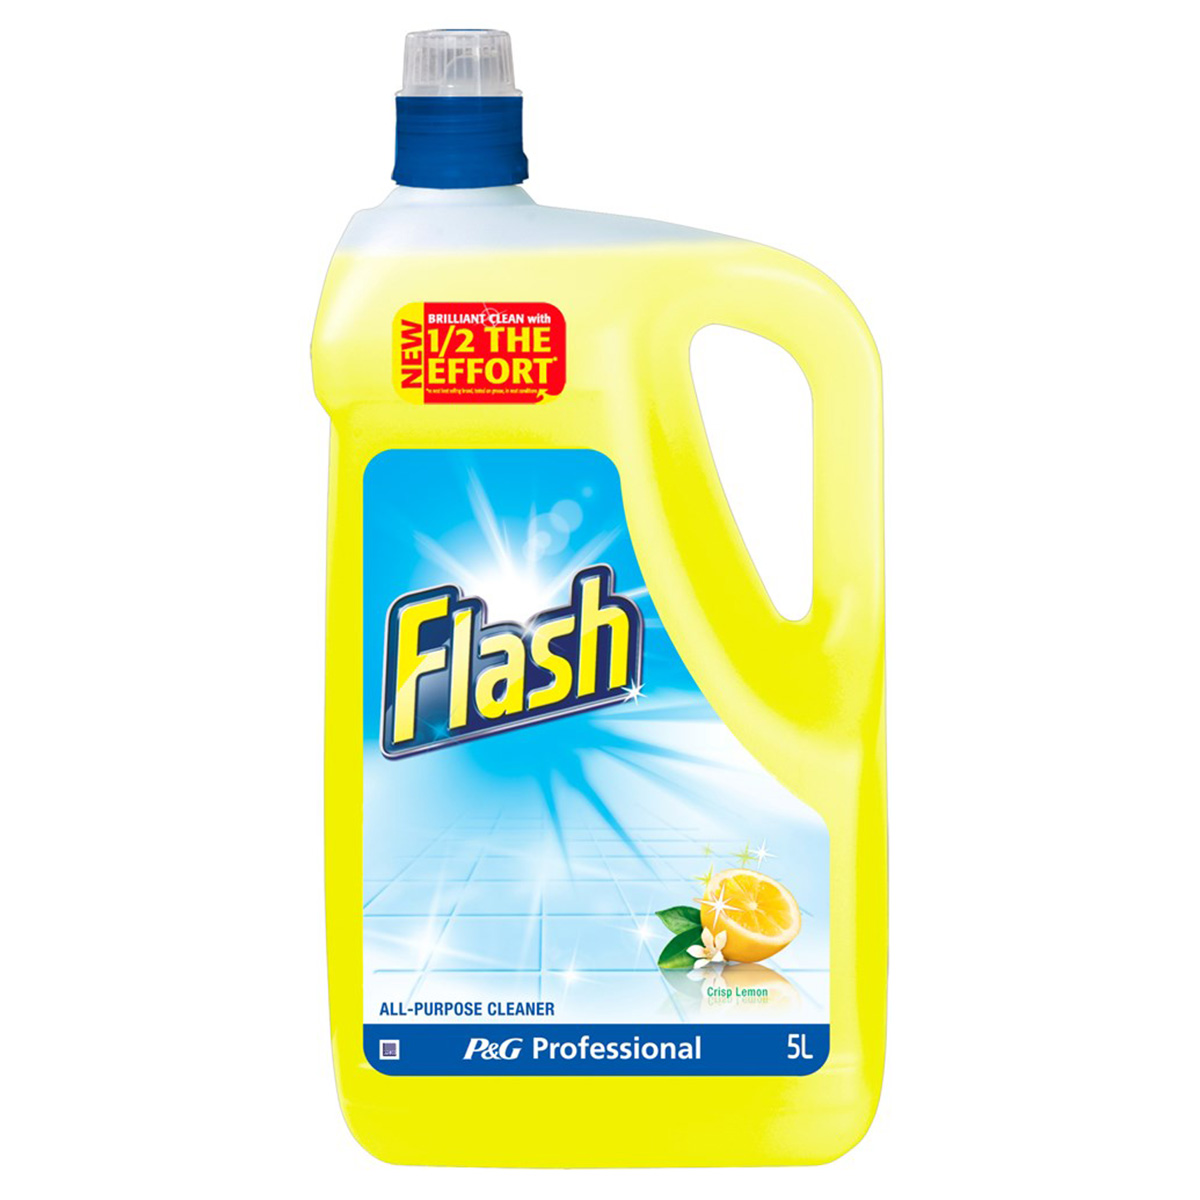 FLASH MULTI-PURPOSE CLEANER - Med Express